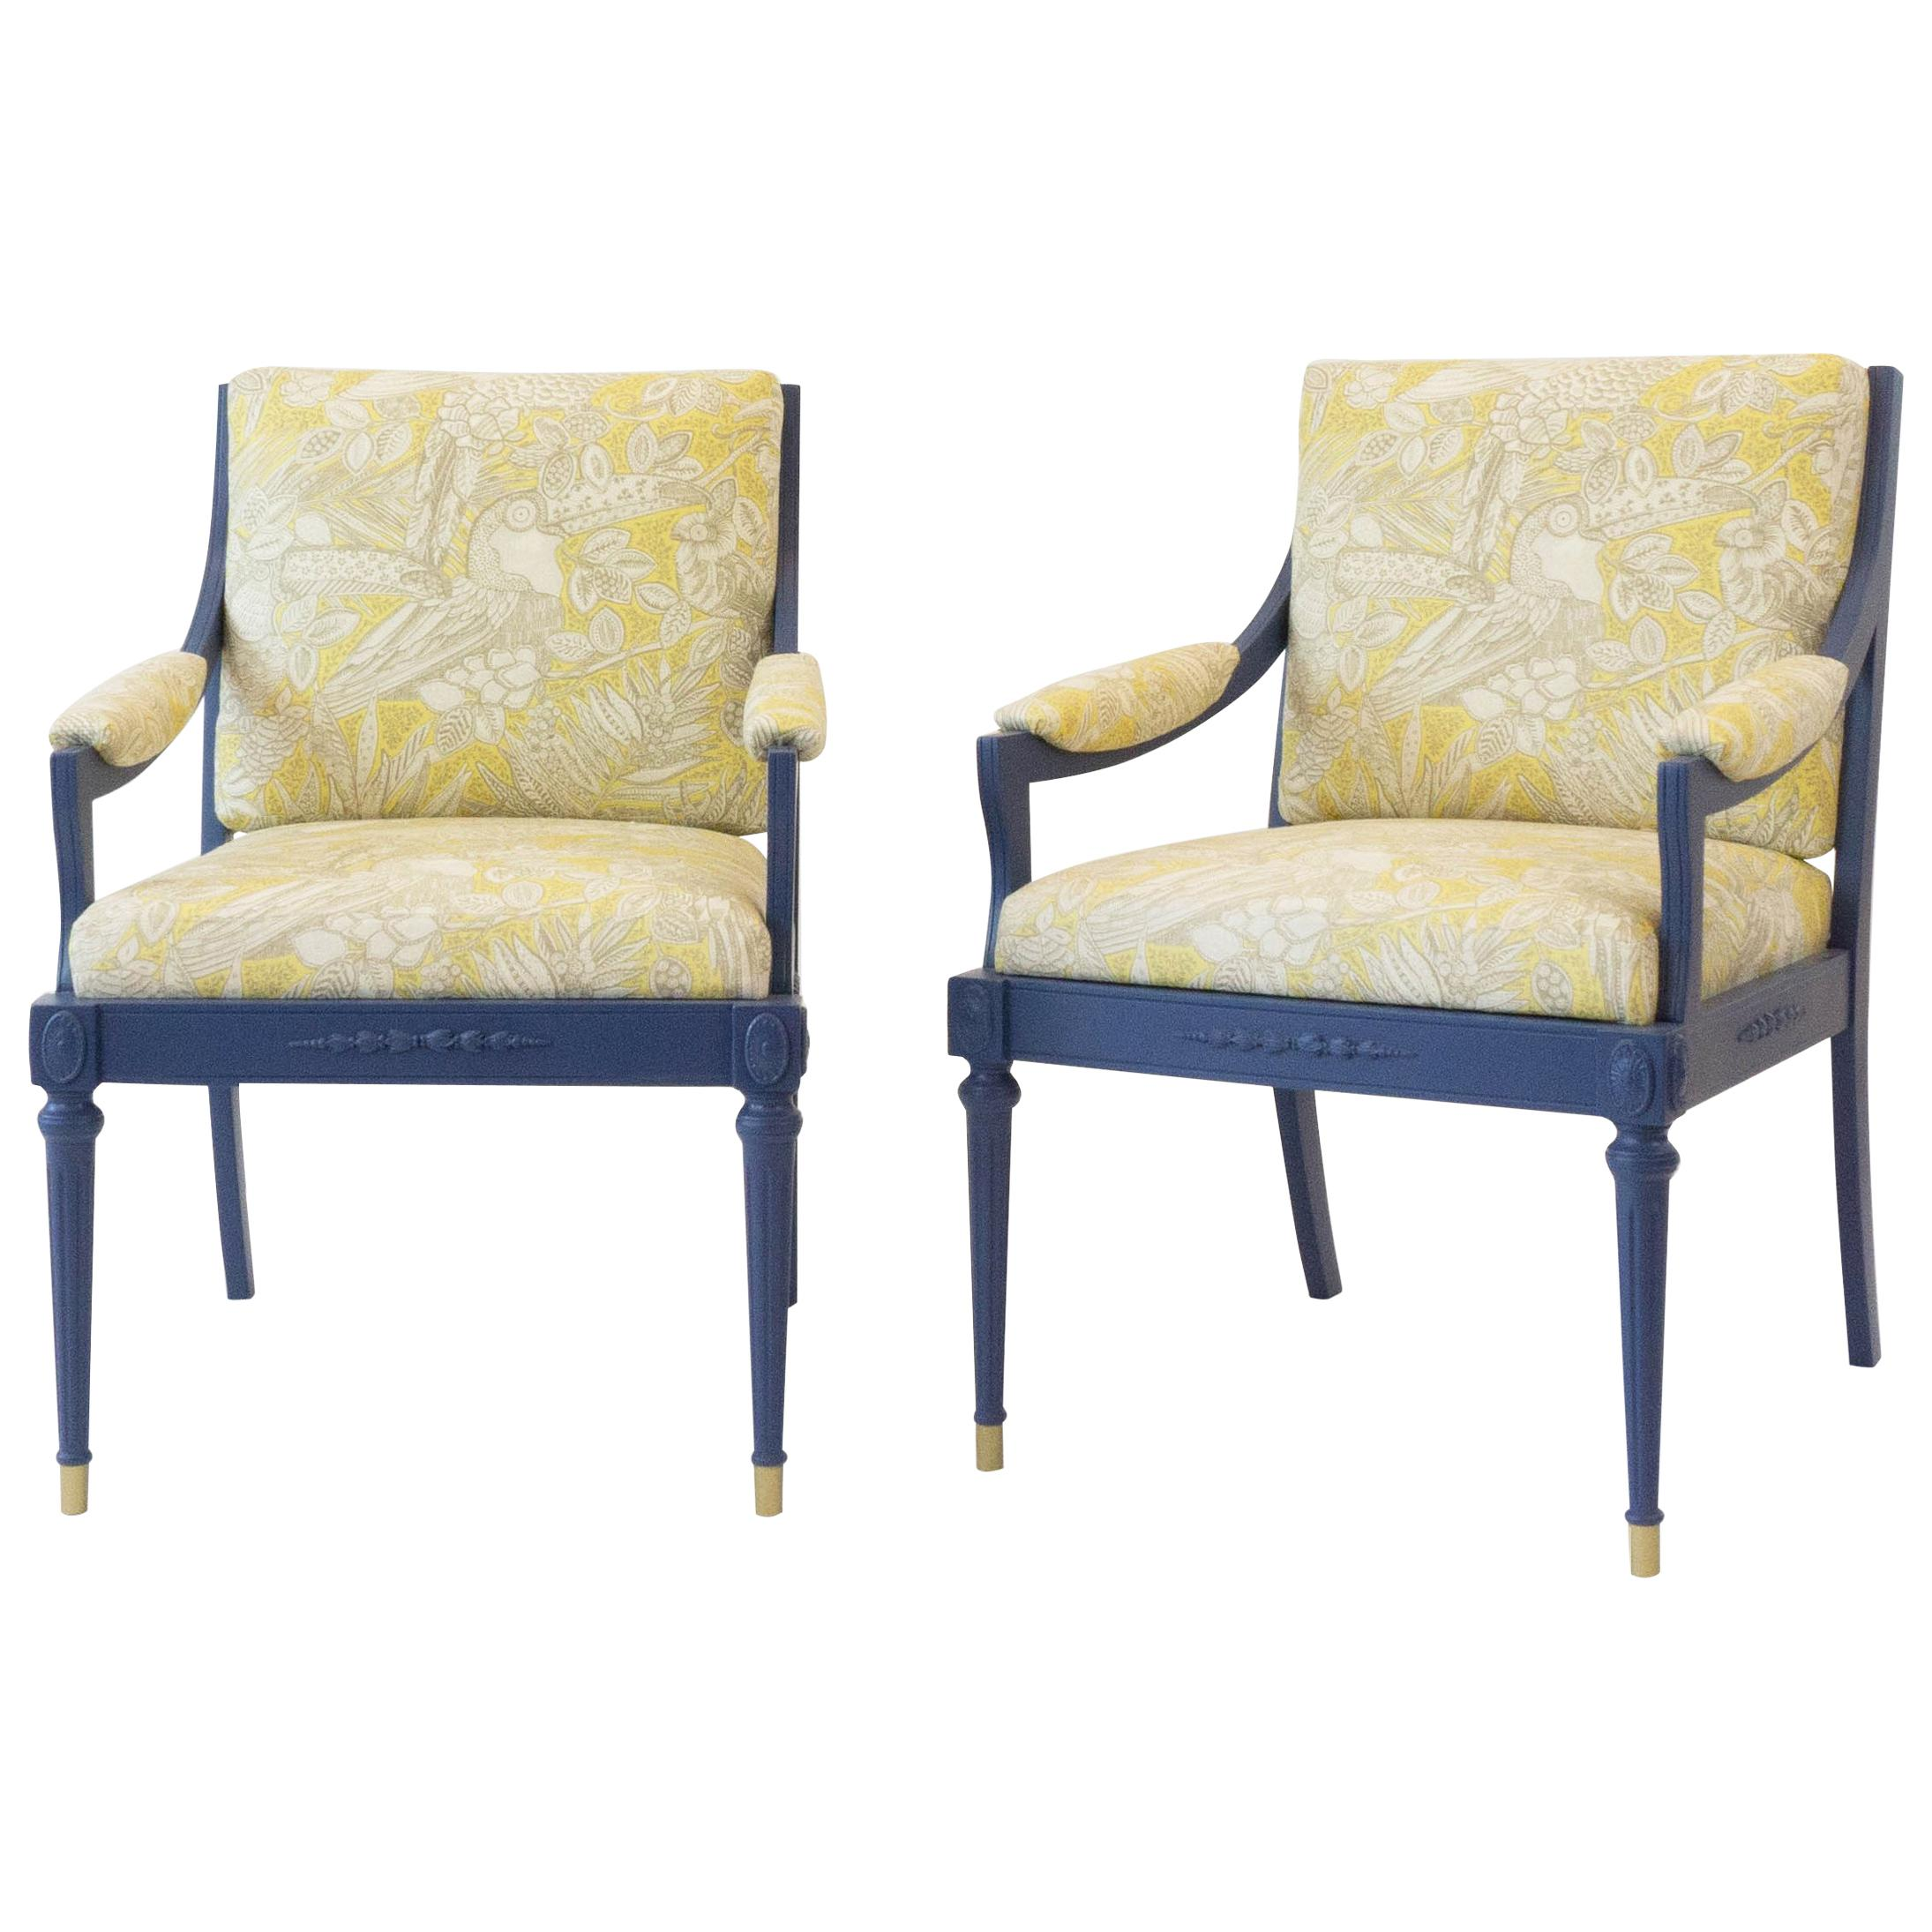 Genial Vintage Hollywood Regency Chairs For Sale